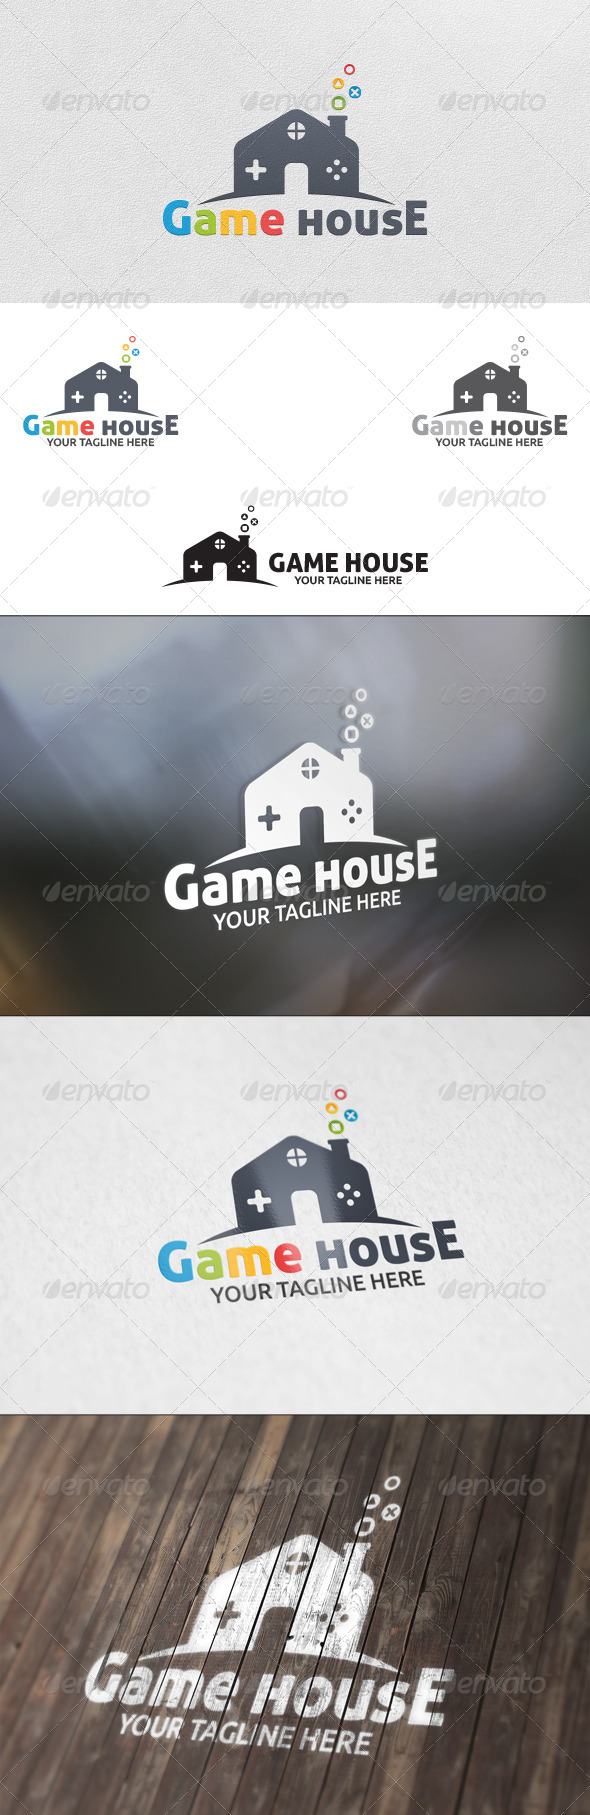 GraphicRiver Game House Logo Template 5783551